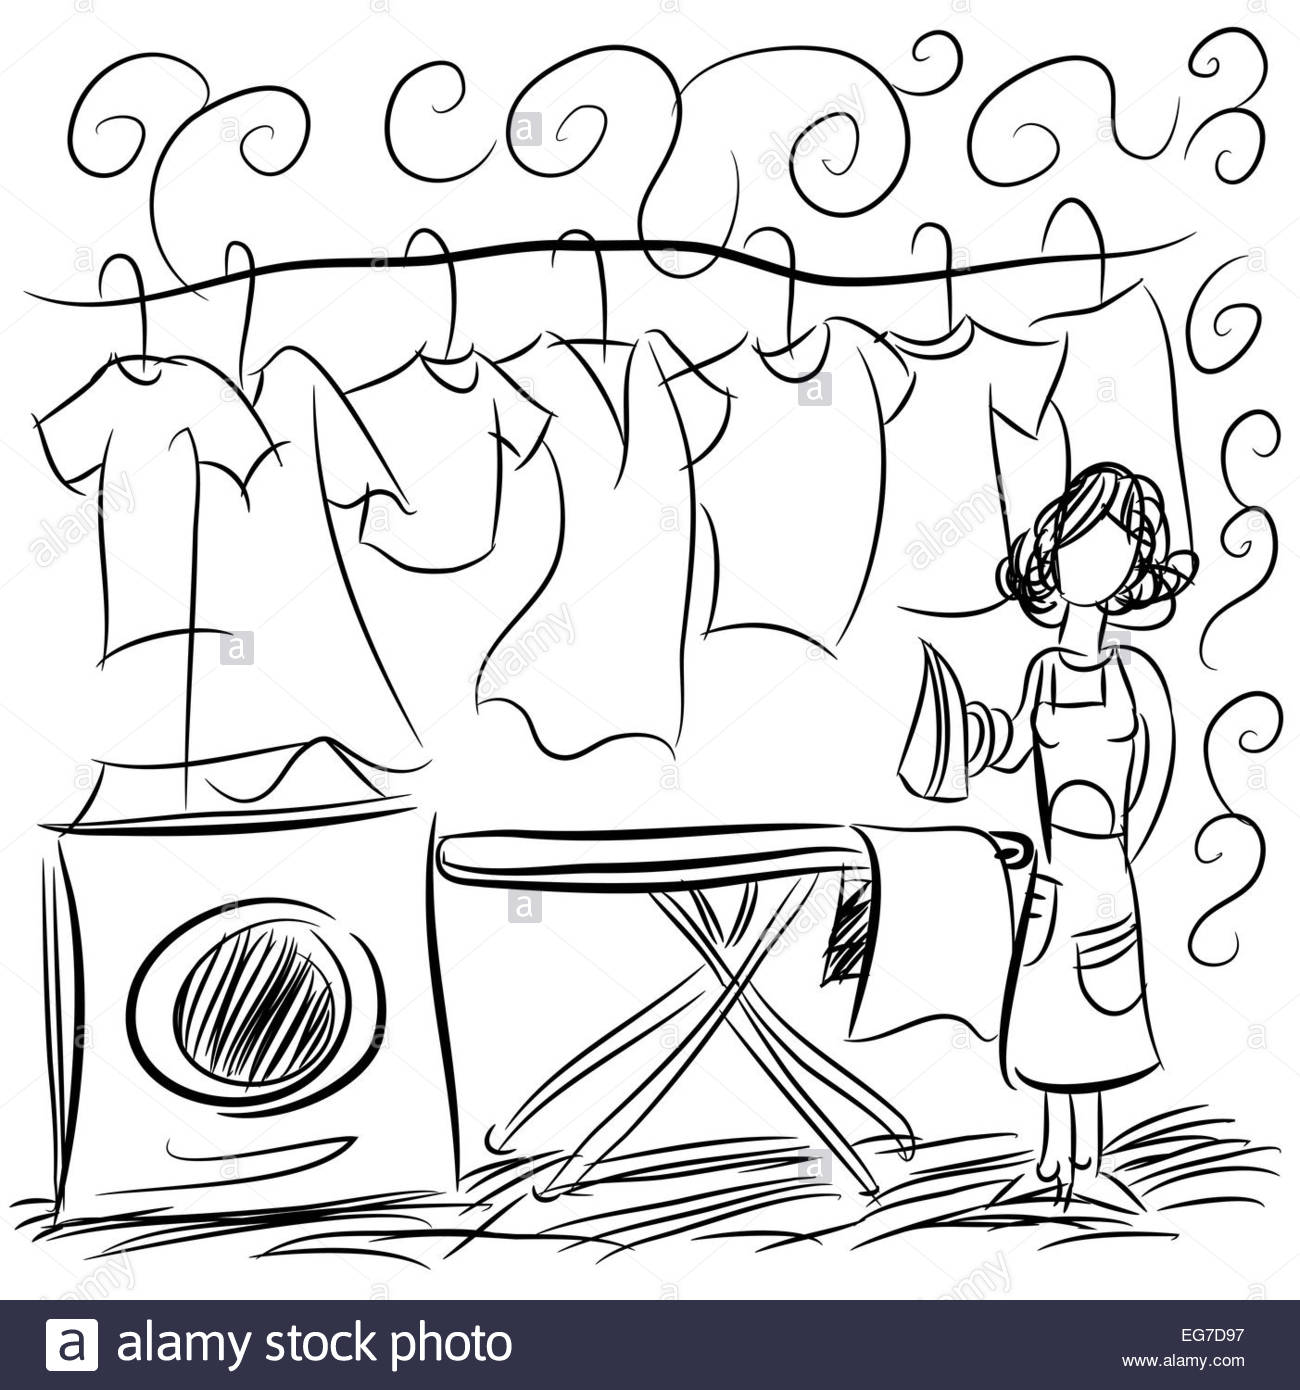 1300x1390 An Image Of A Laundry Service Drawing Stock Photo, Royalty Free